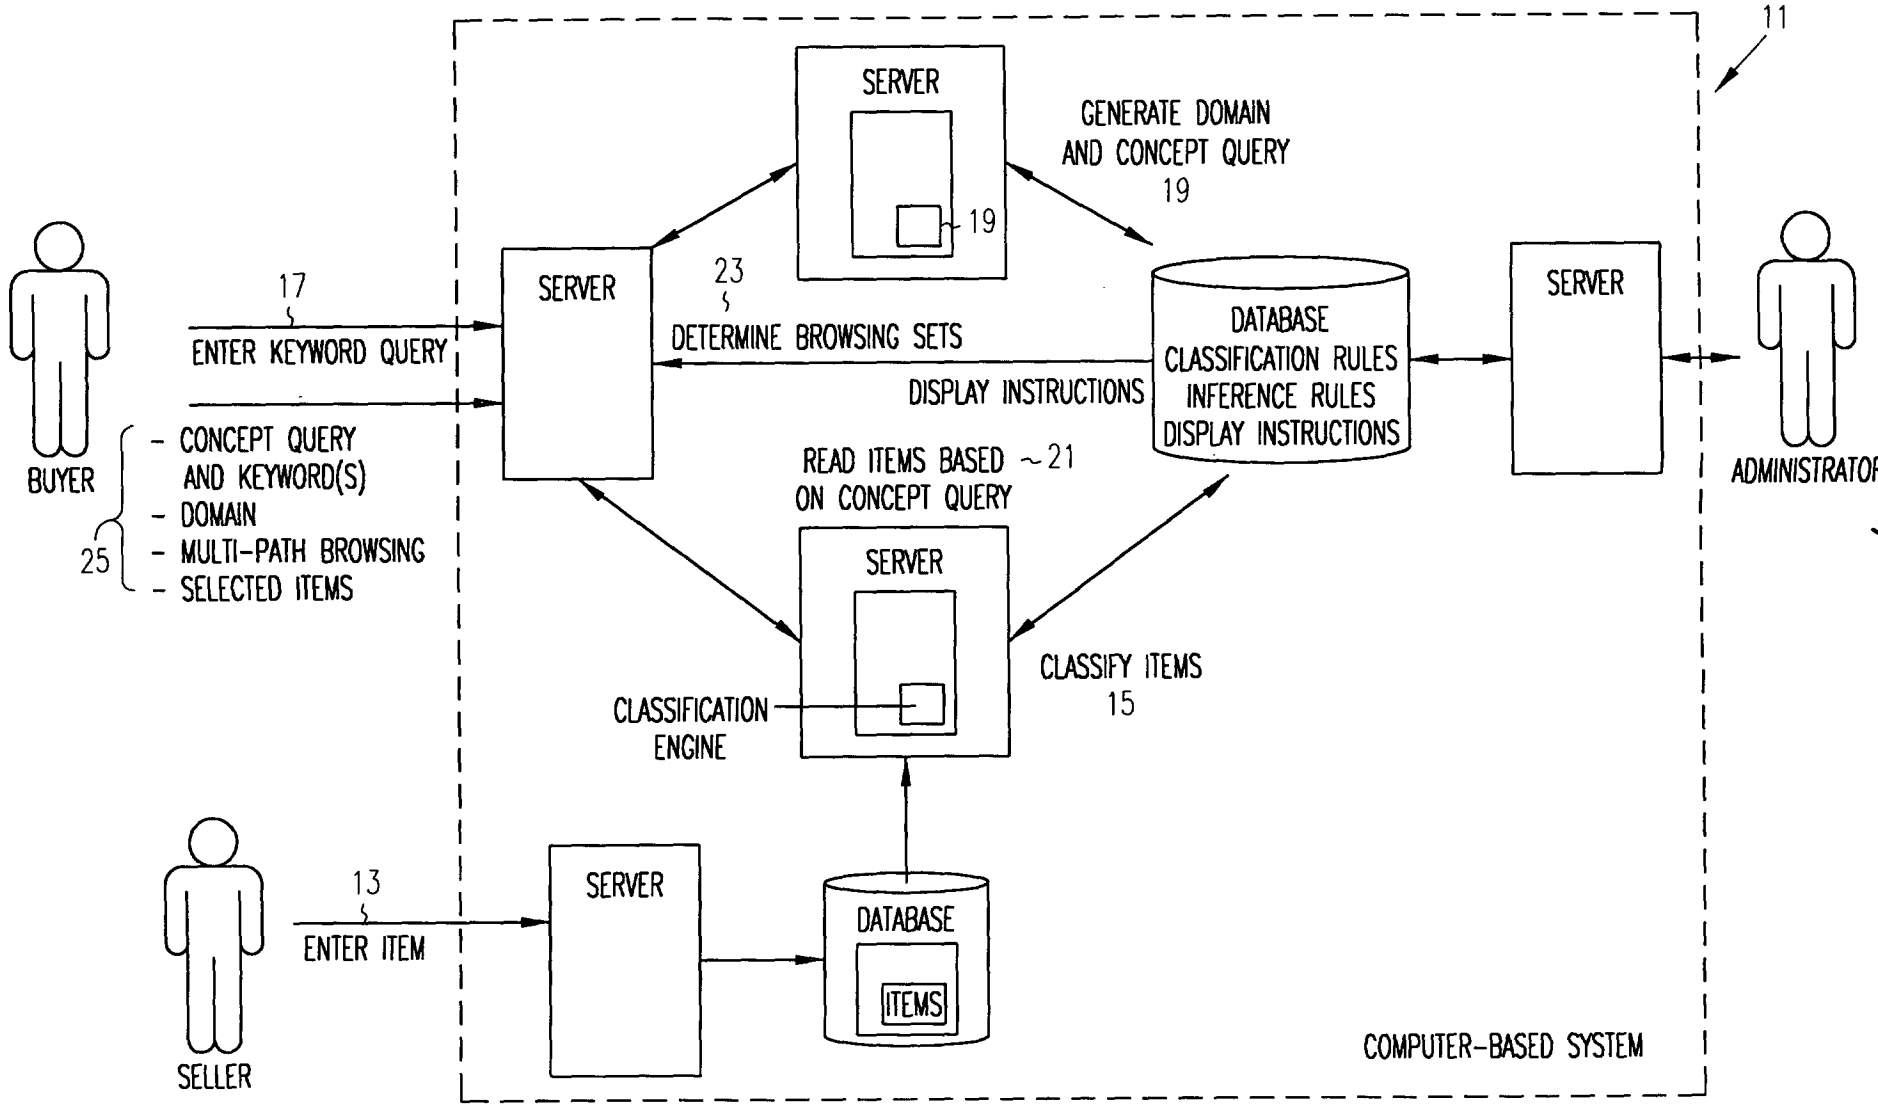 Fig. 1 of EP 1 877 933